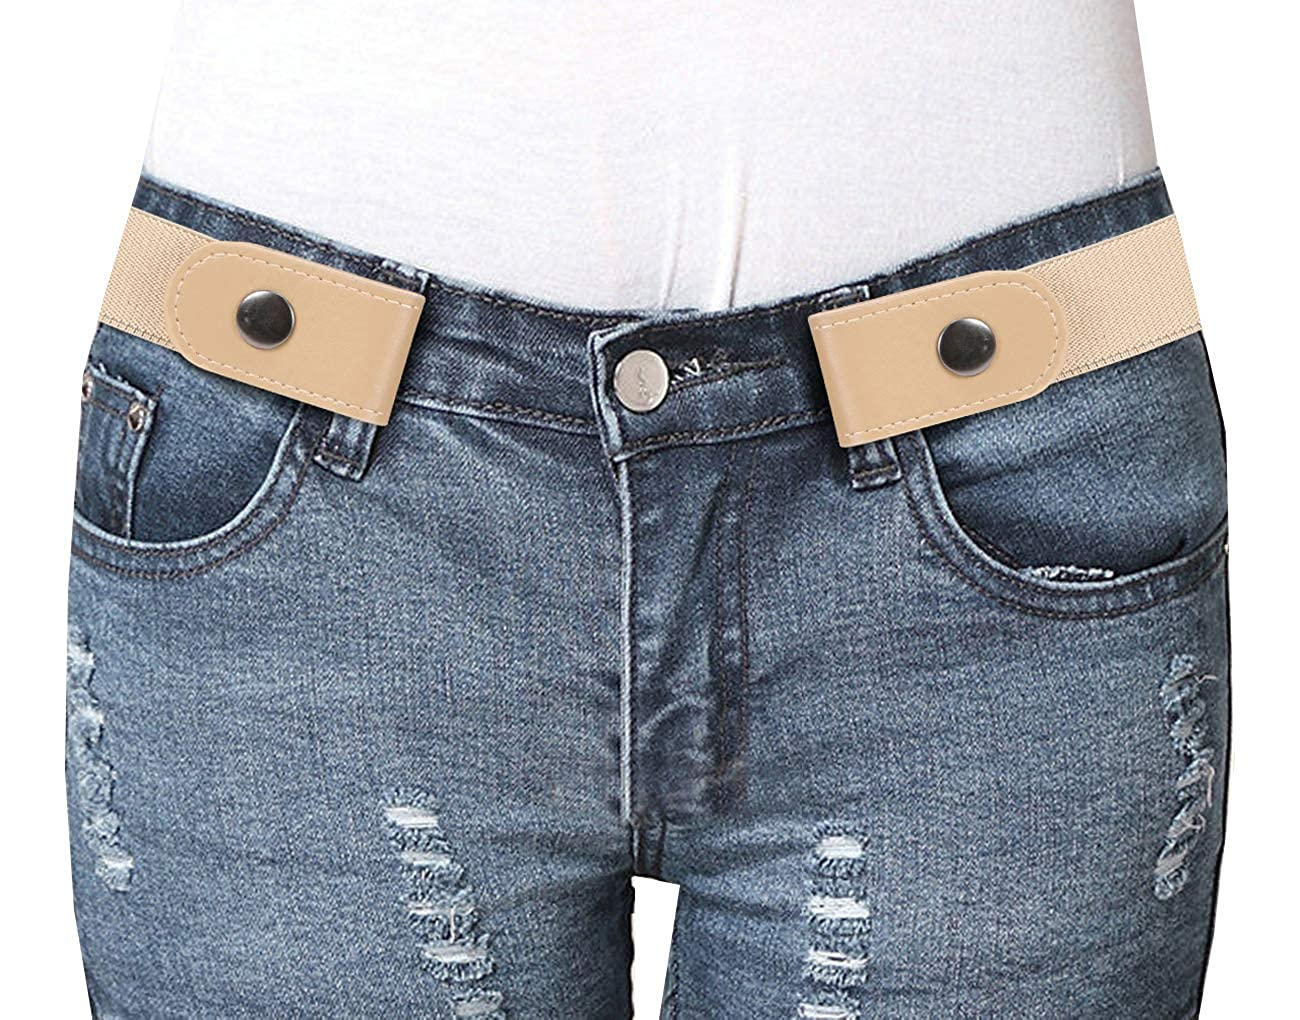 Beige Bucklefree Elastic Women Belt for Jeans without Buckle, SANSTHS Comfortable Invisible Belt No Bulge No Hassle